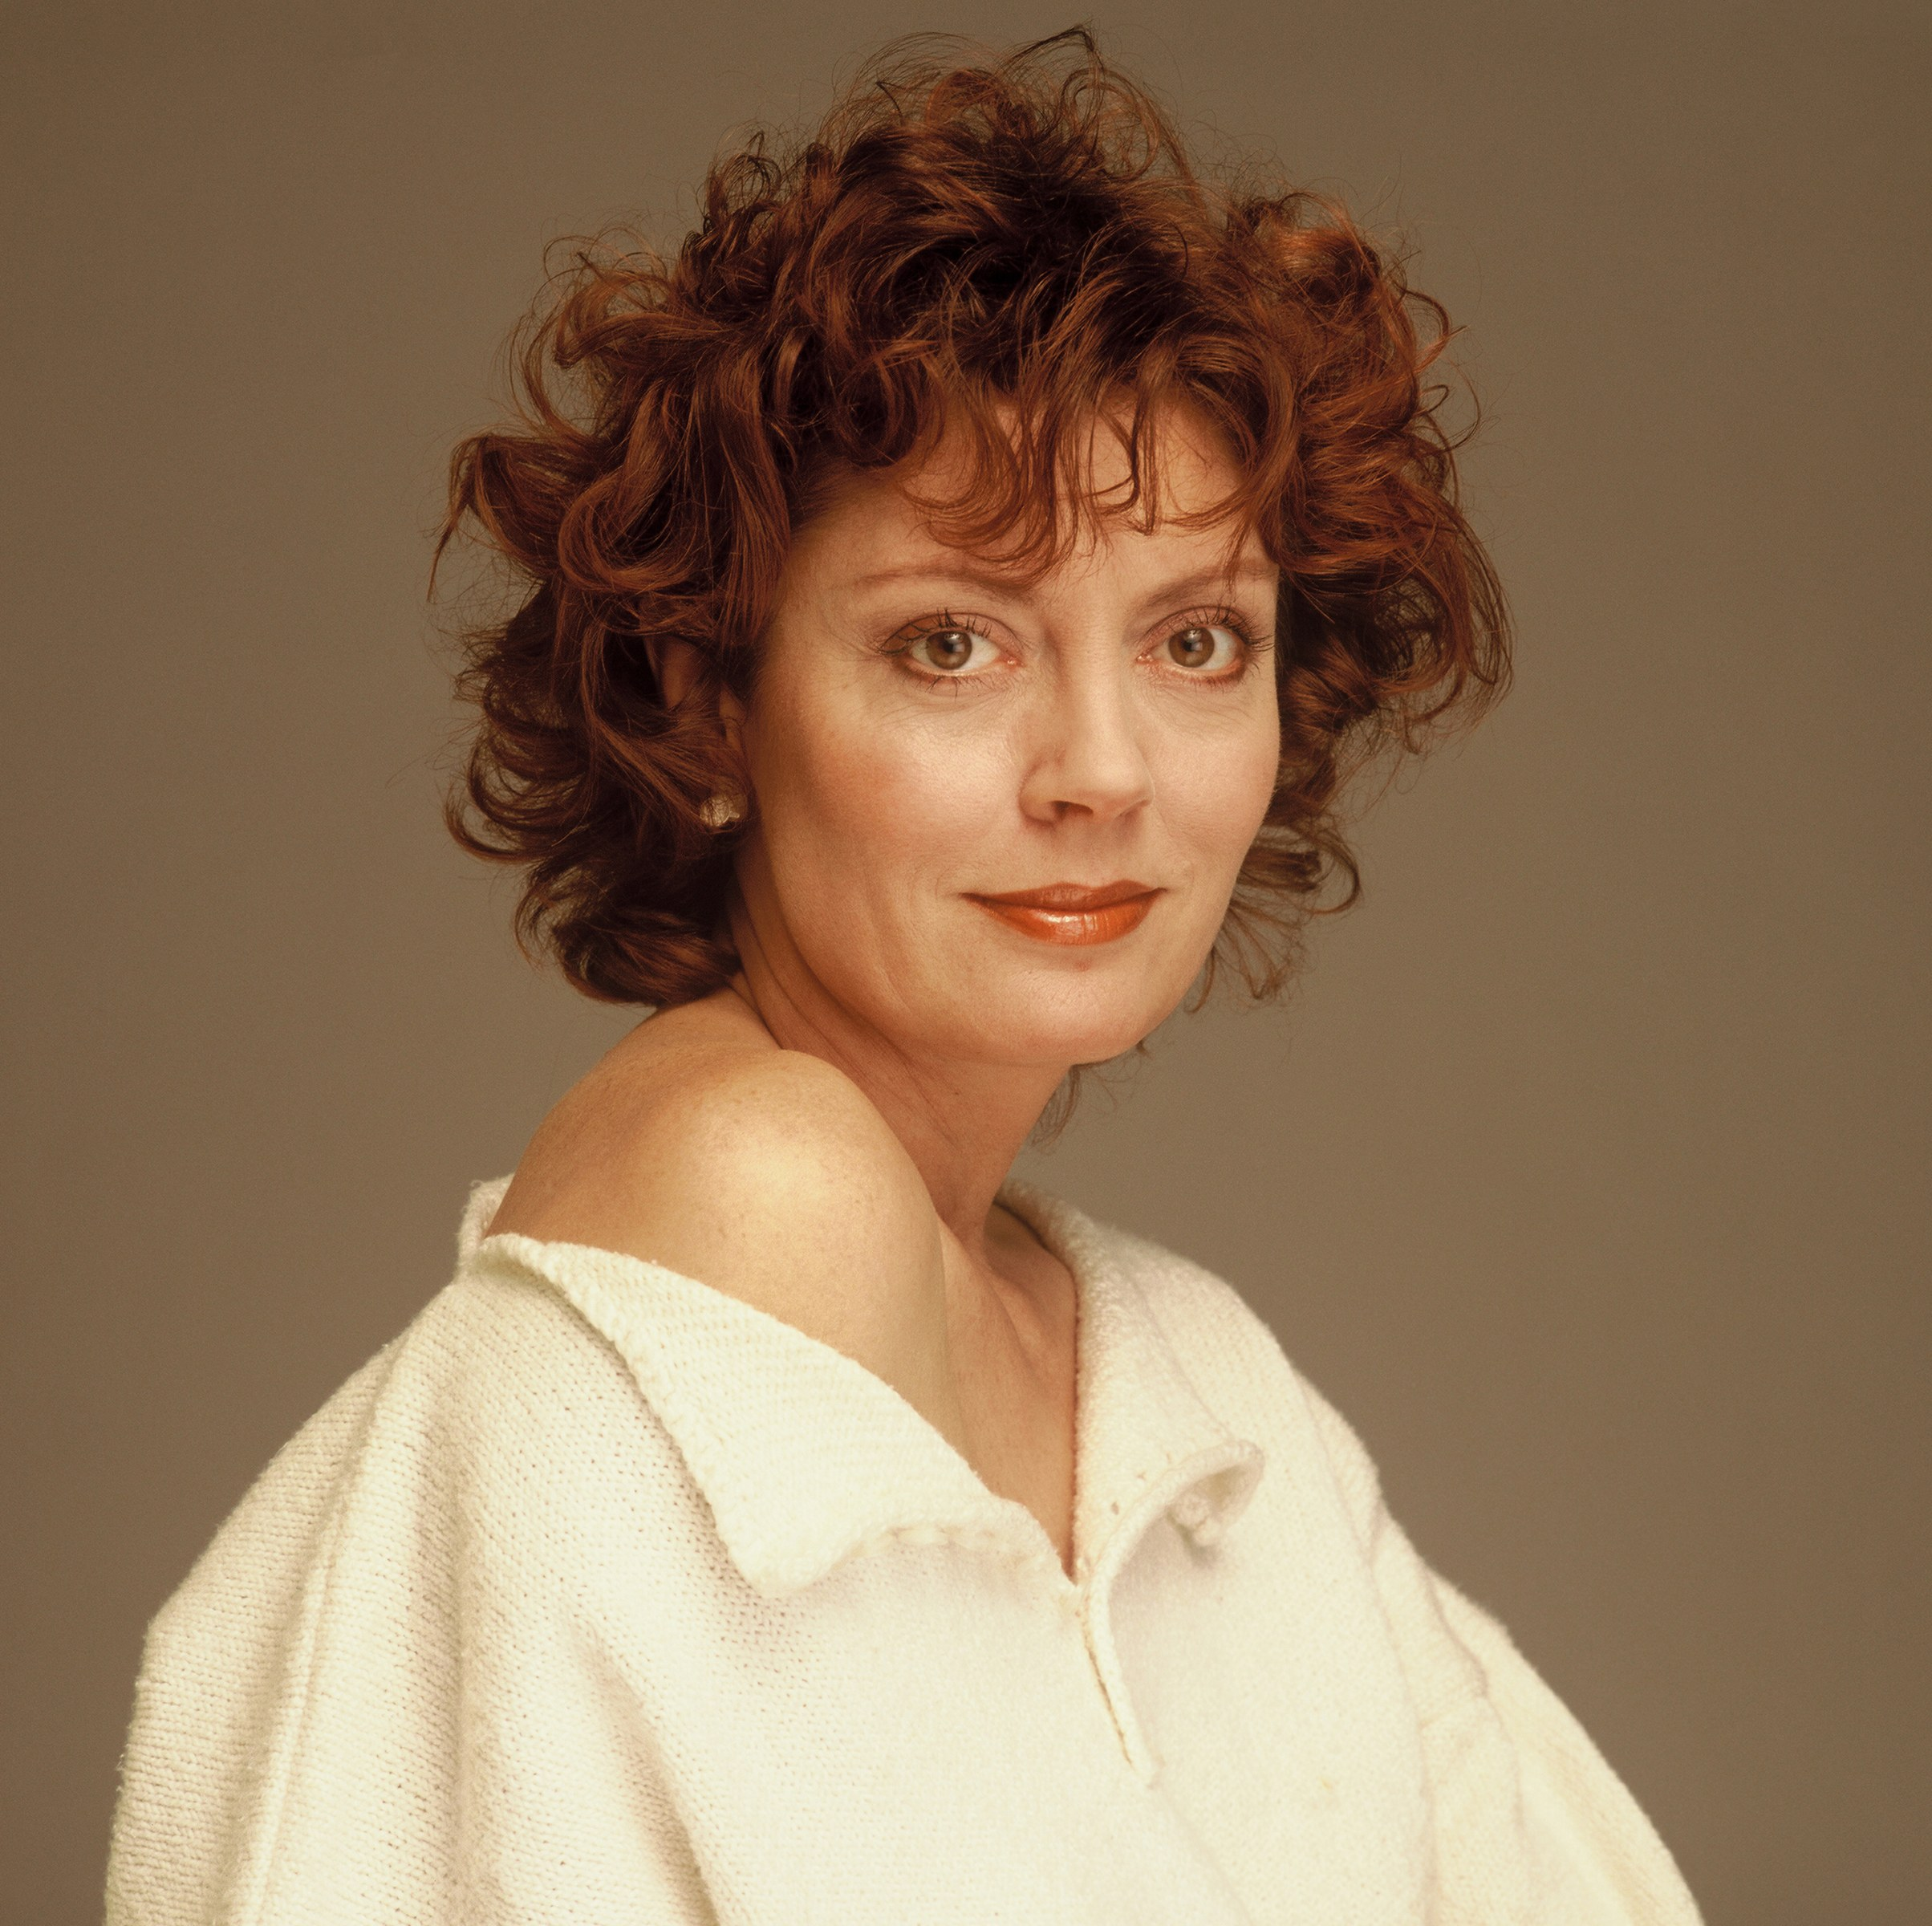 Susan Sarandon images Susan Sarandon HD wallpaper and background ...